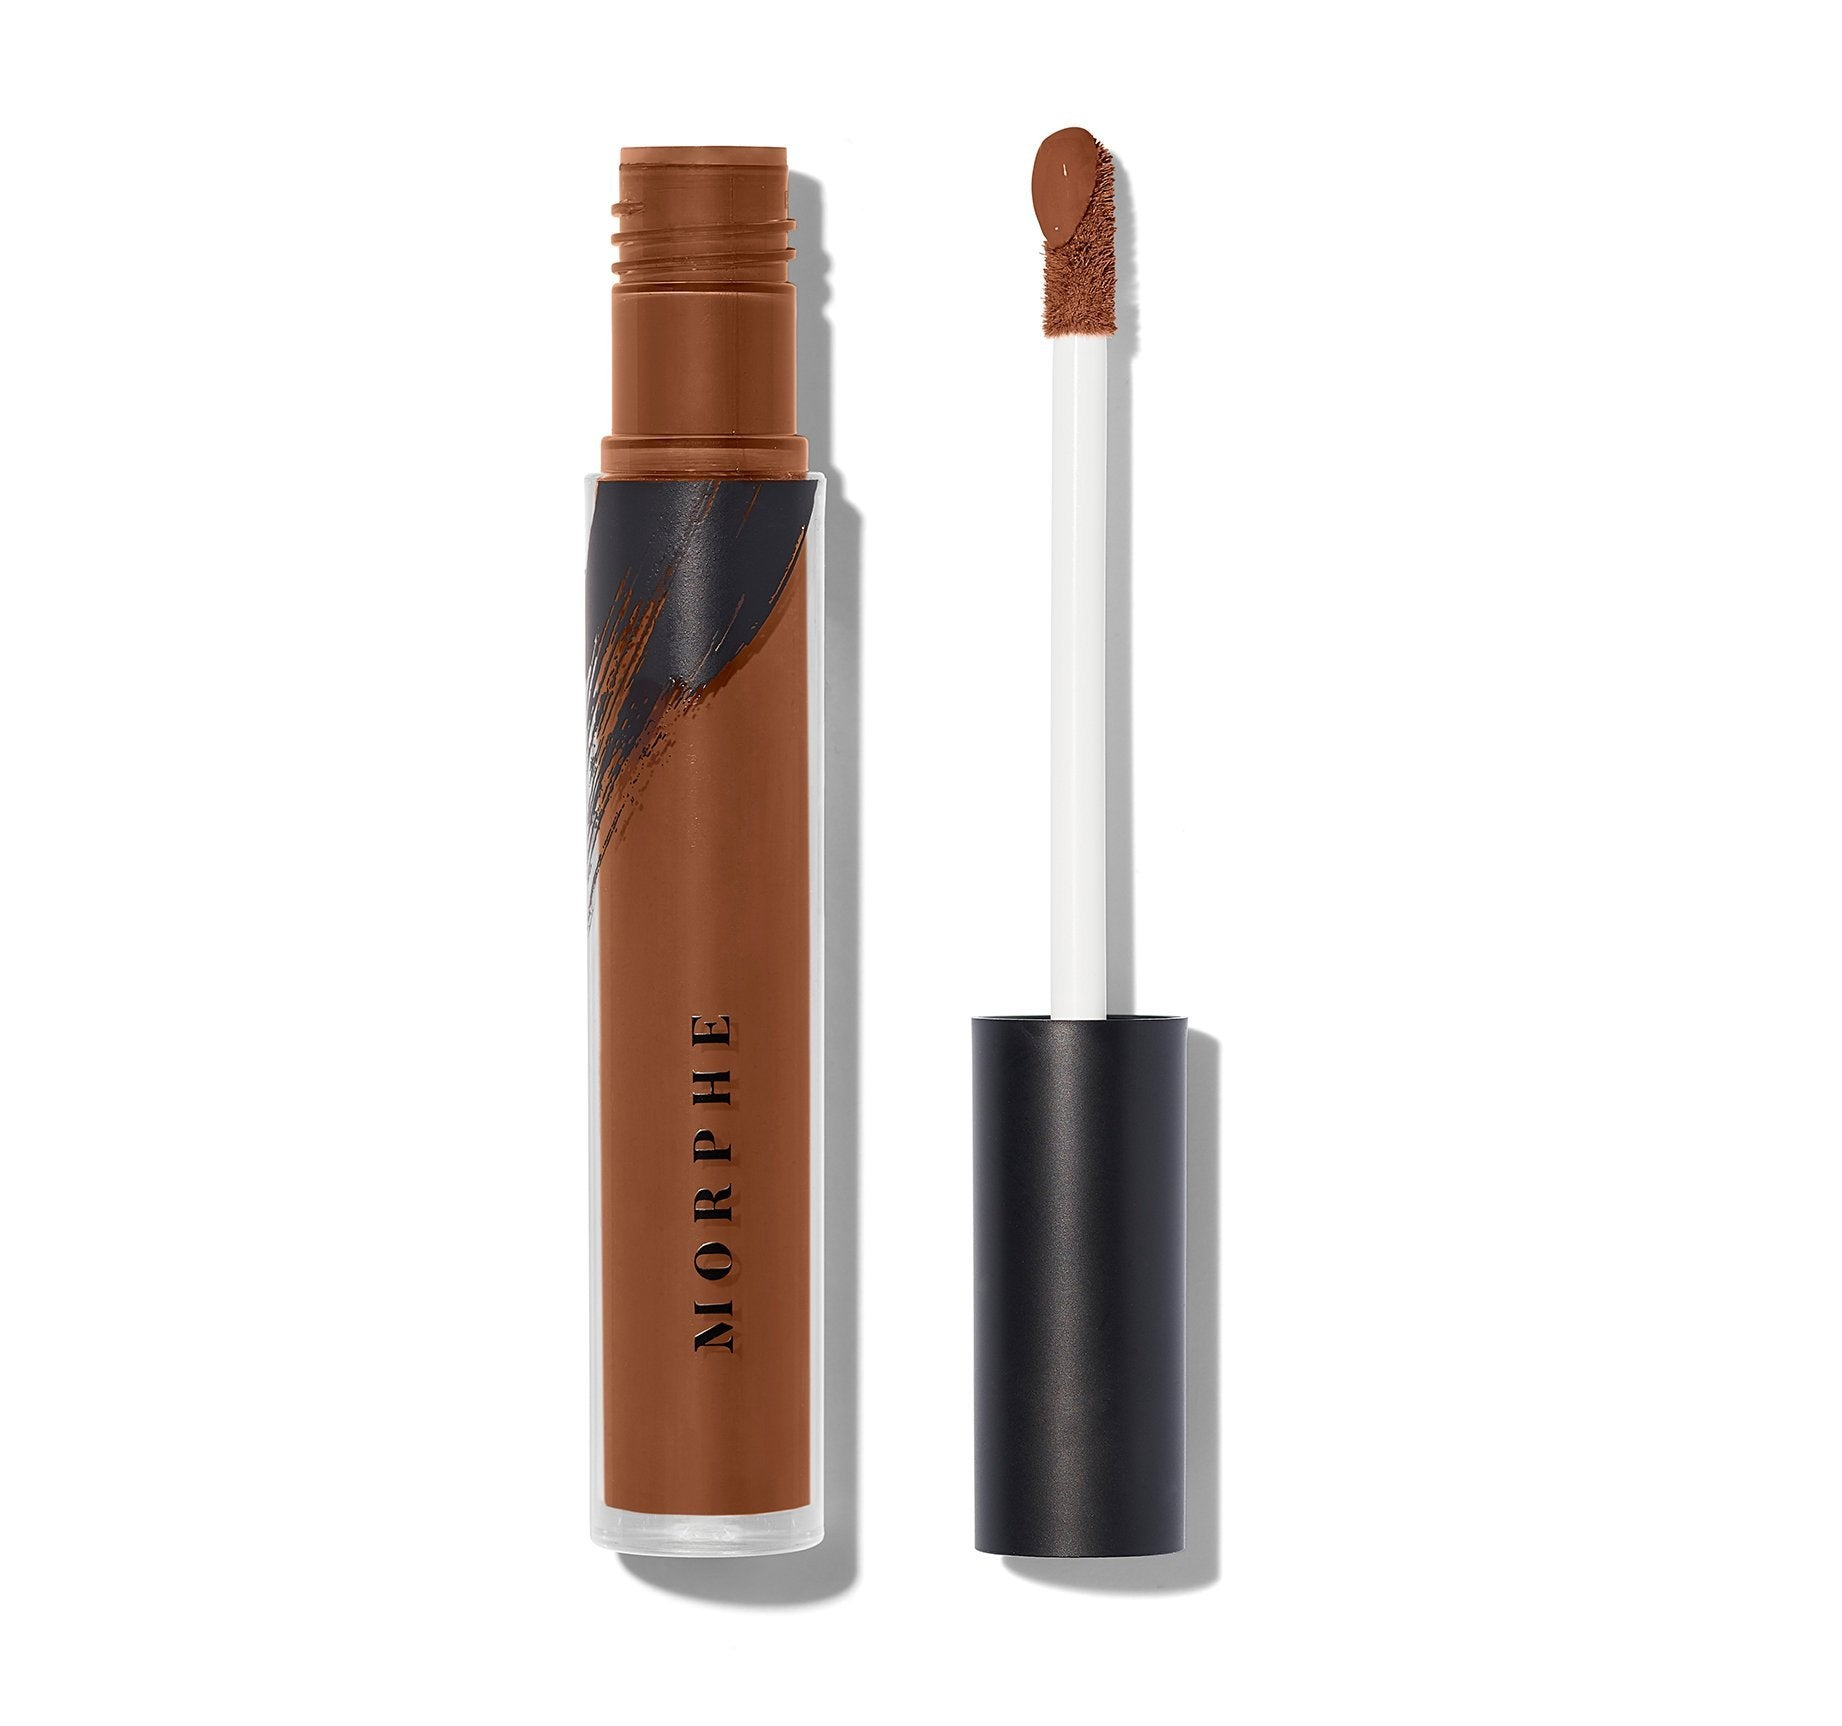 FLUIDITY FULL-COVERAGE CONCEALER - C4.65, view larger image